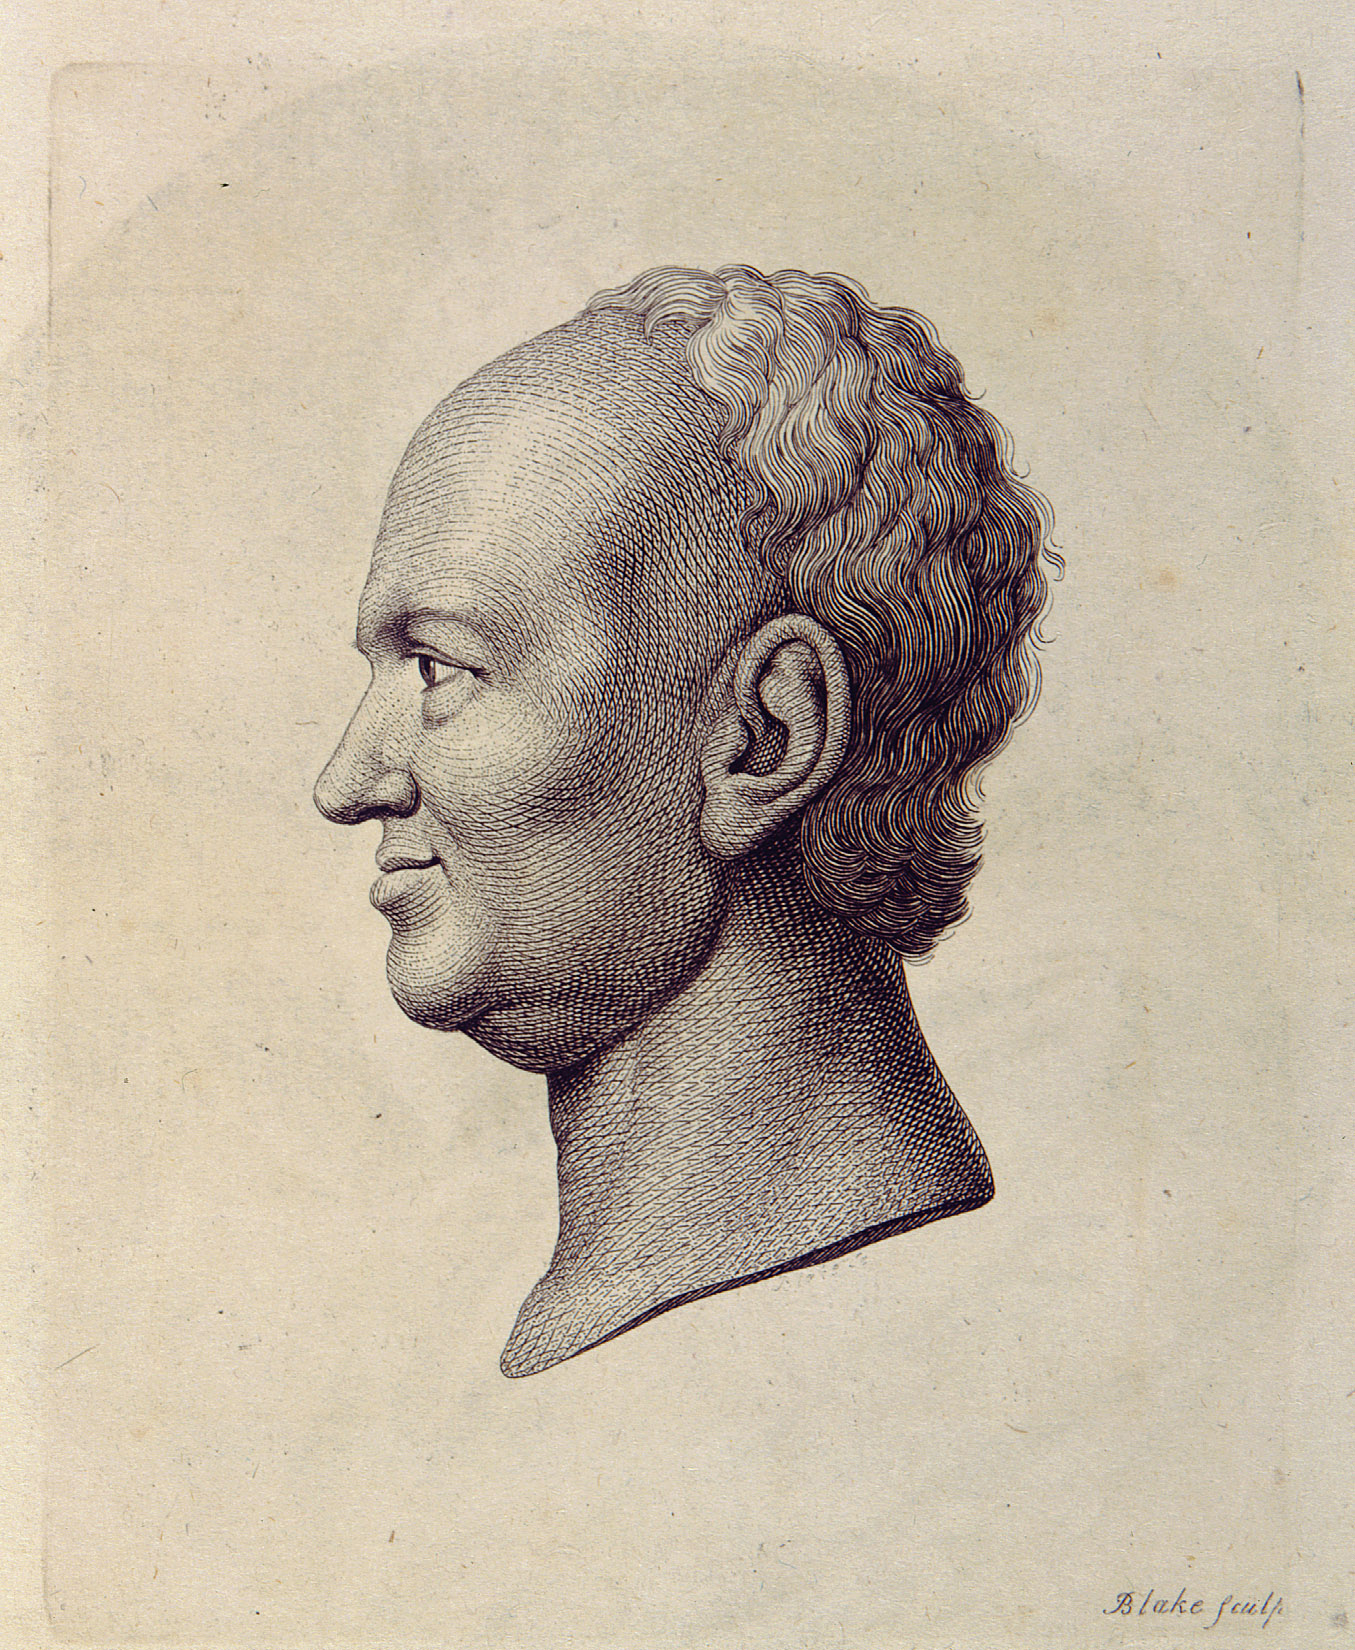 essays on physiognomy lavater summary Would have a high belief in physiognomy and reasoned that this belief would be   and pastor johann kaspar lavater (1783) published a series of influential  essays on  summary of means, standard deviations, and correlations  between.